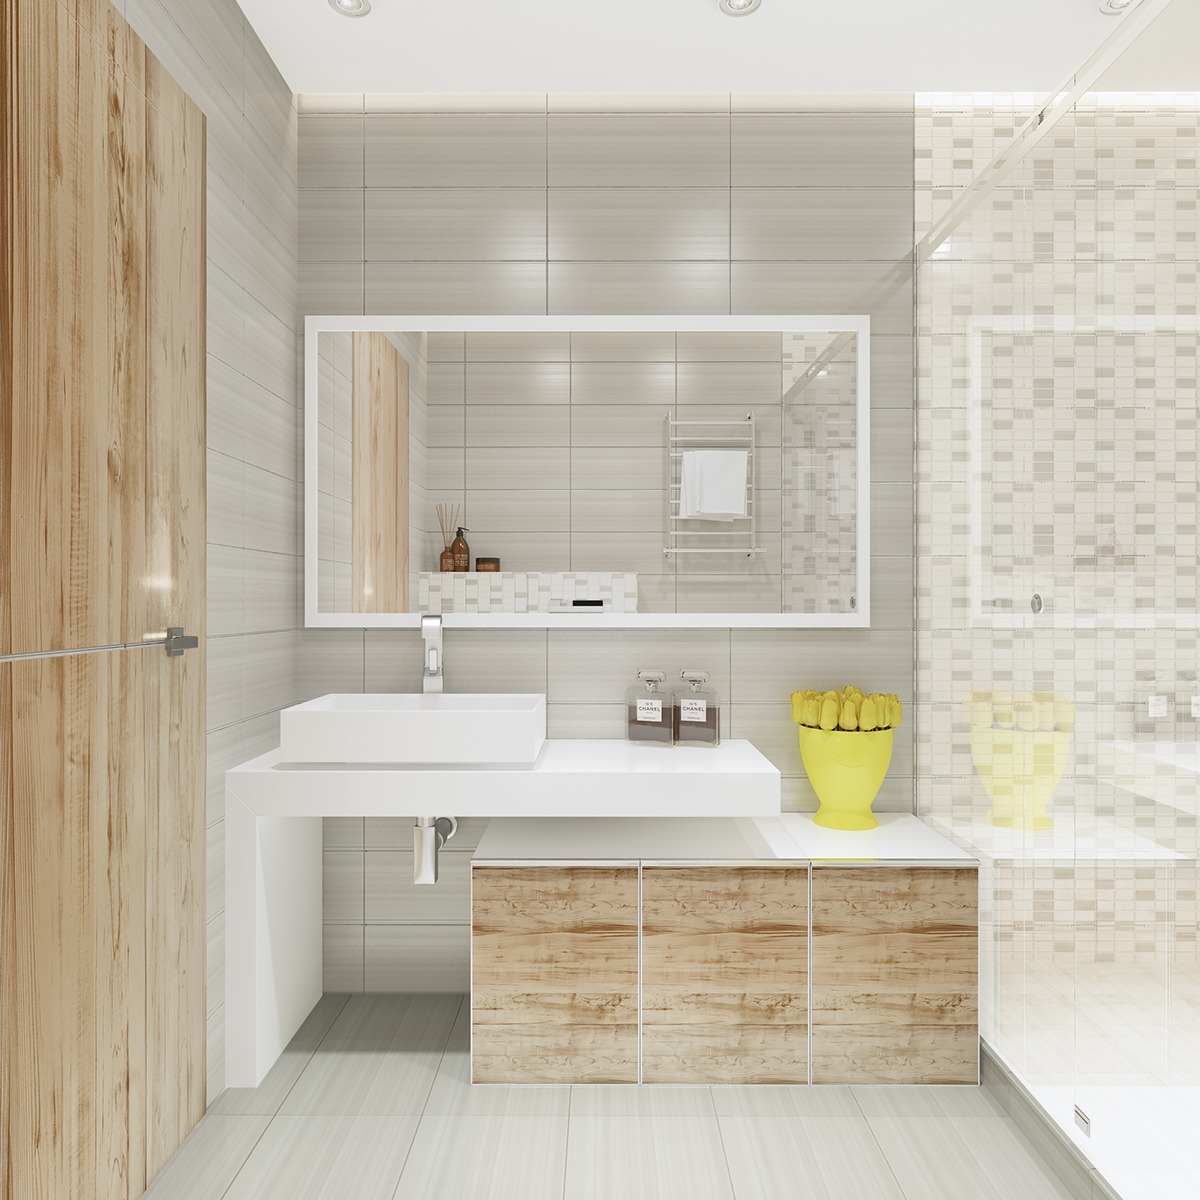 Wood Bathroom Design - Similarly simple designs with a bright and cheerful tone